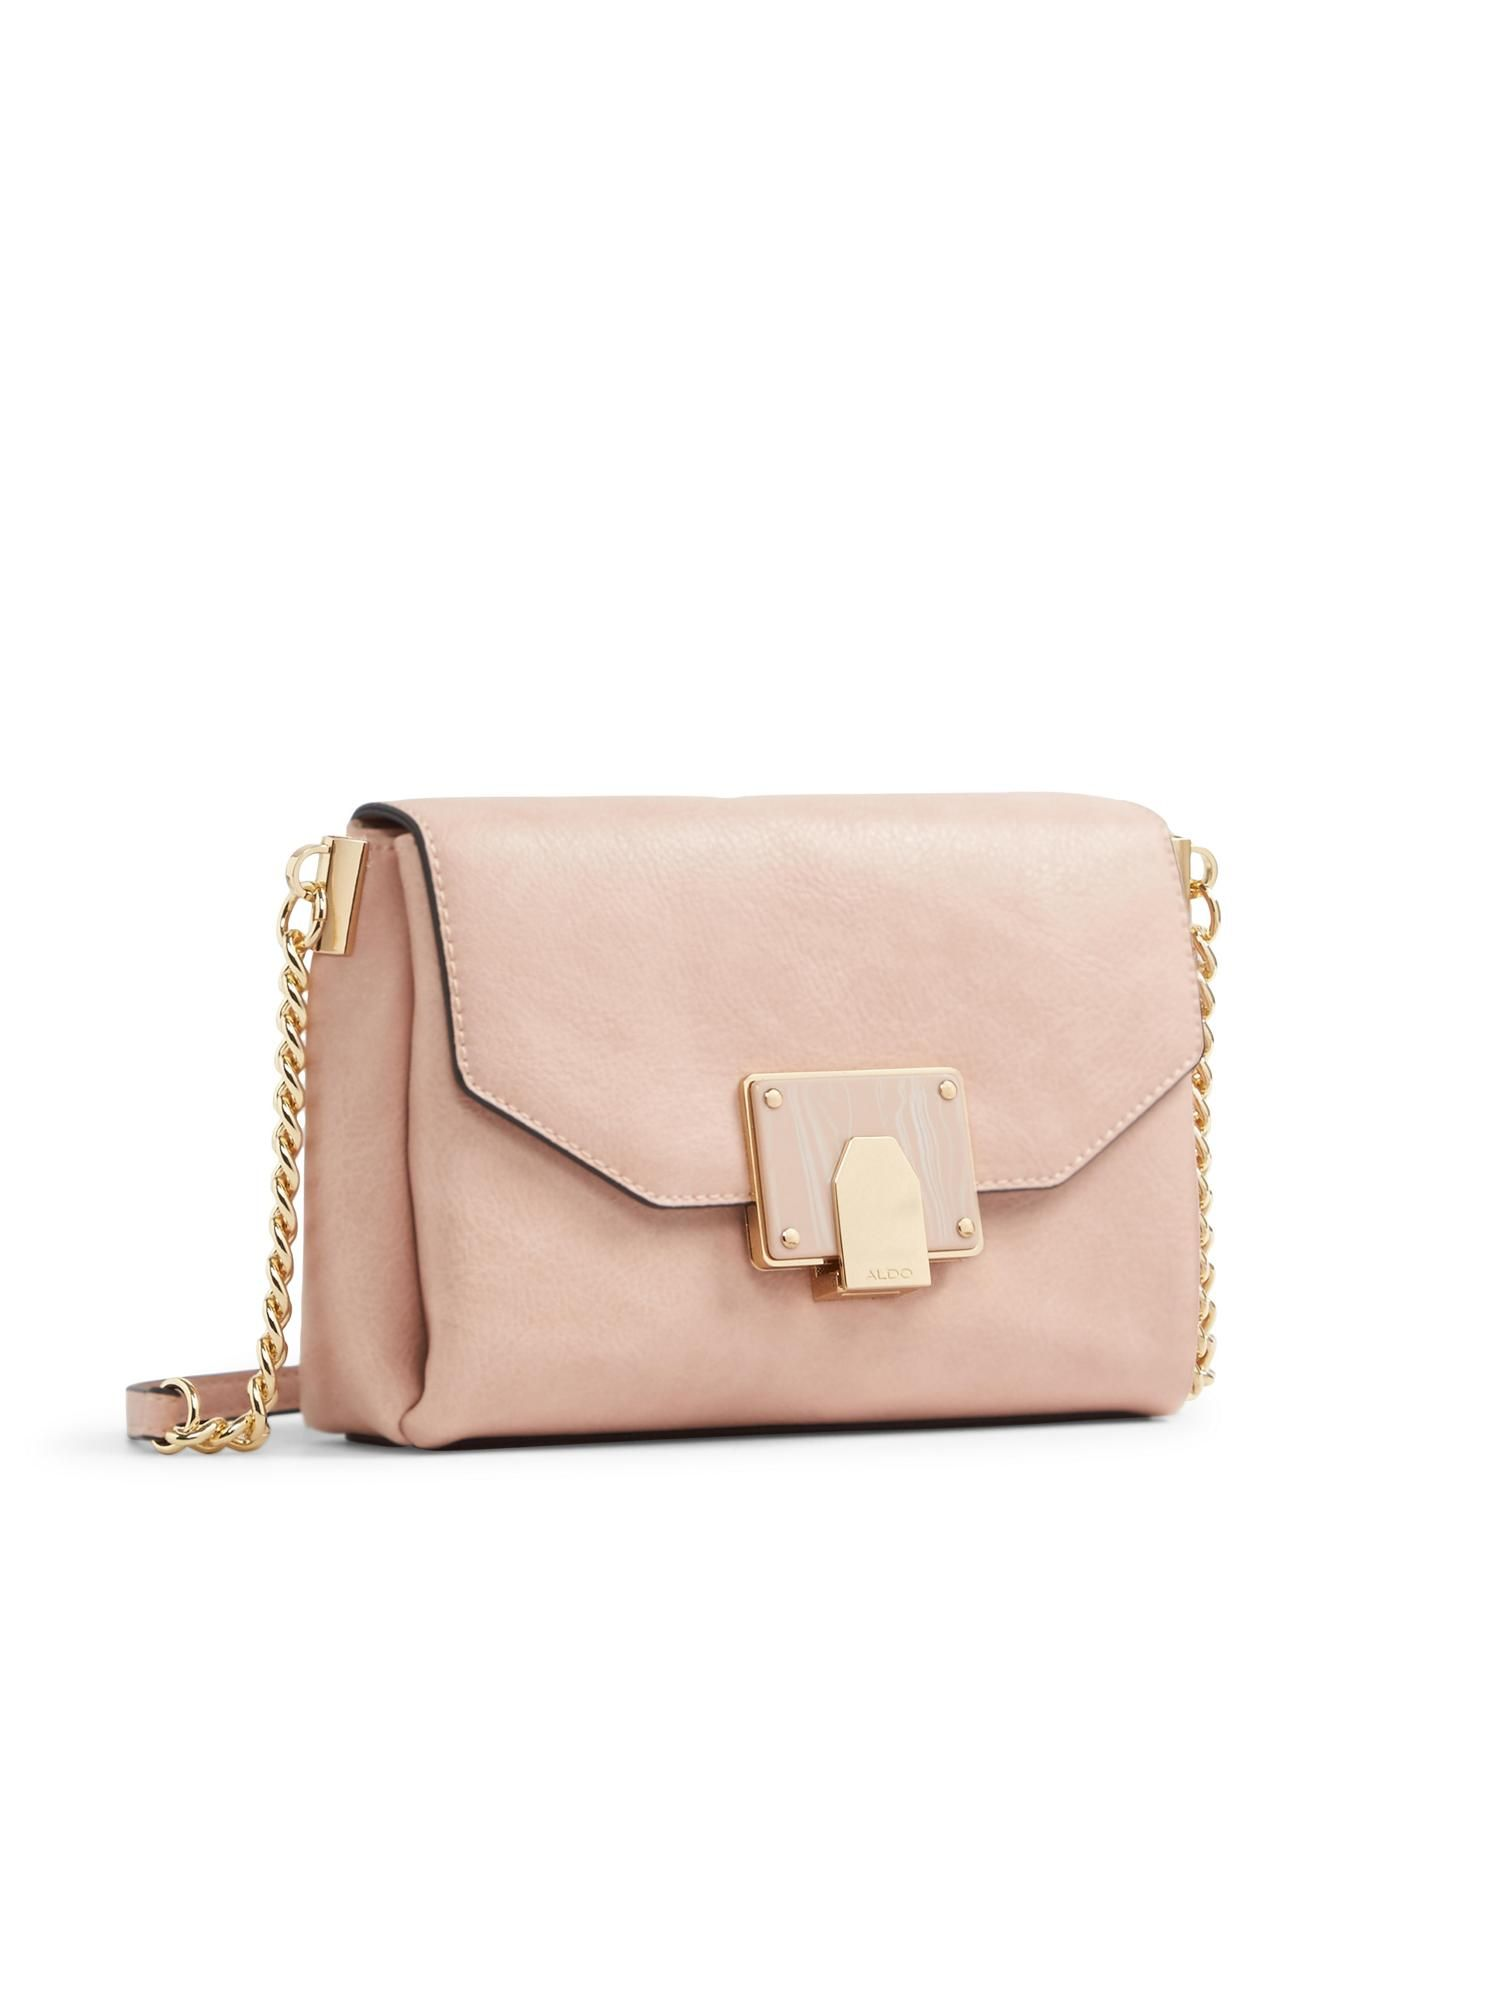 1288491aba1 45GBP Buy your Aldo Nanymo Cross Body Bag online now at House of Fraser.  Why not Buy and Collect in-store